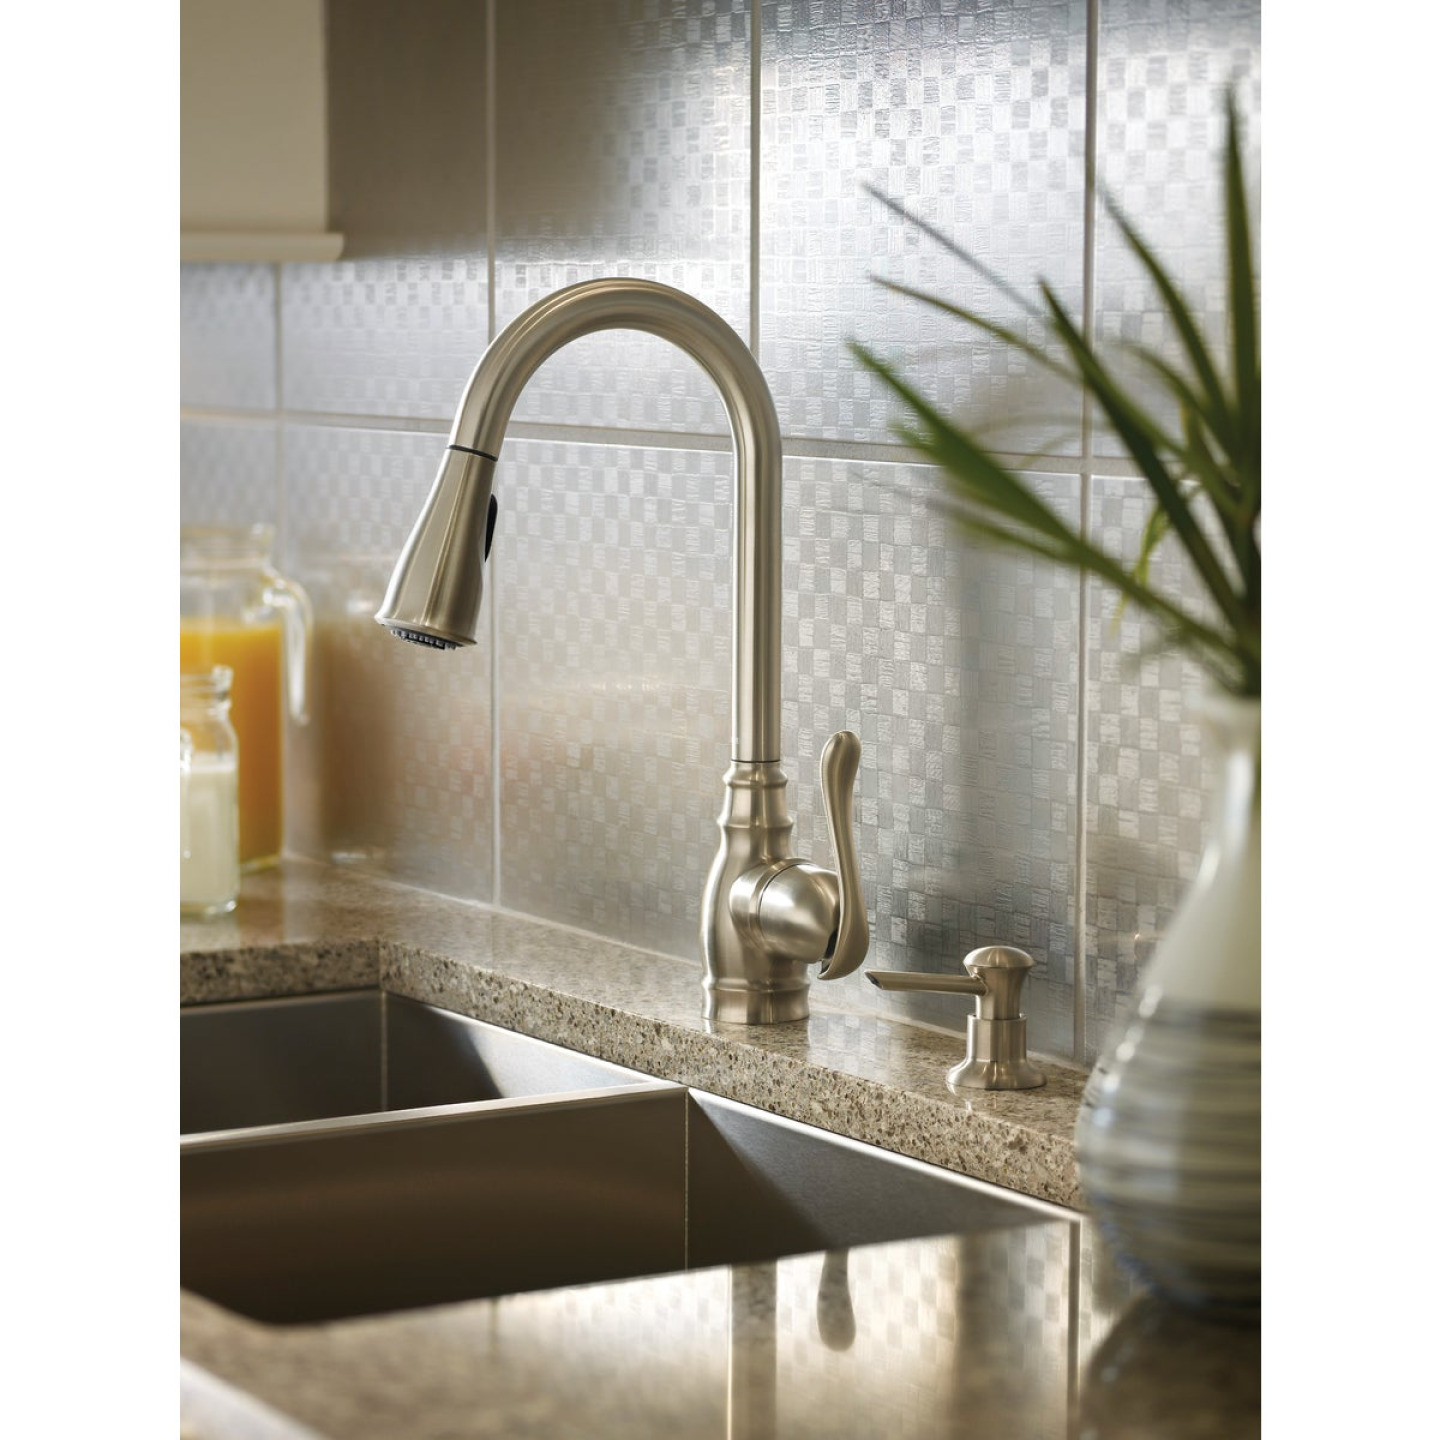 Moen Anabelle Single Handle Lever Pull-Down Kitchen Faucet with Soap Dispenser, Stainless Image 2